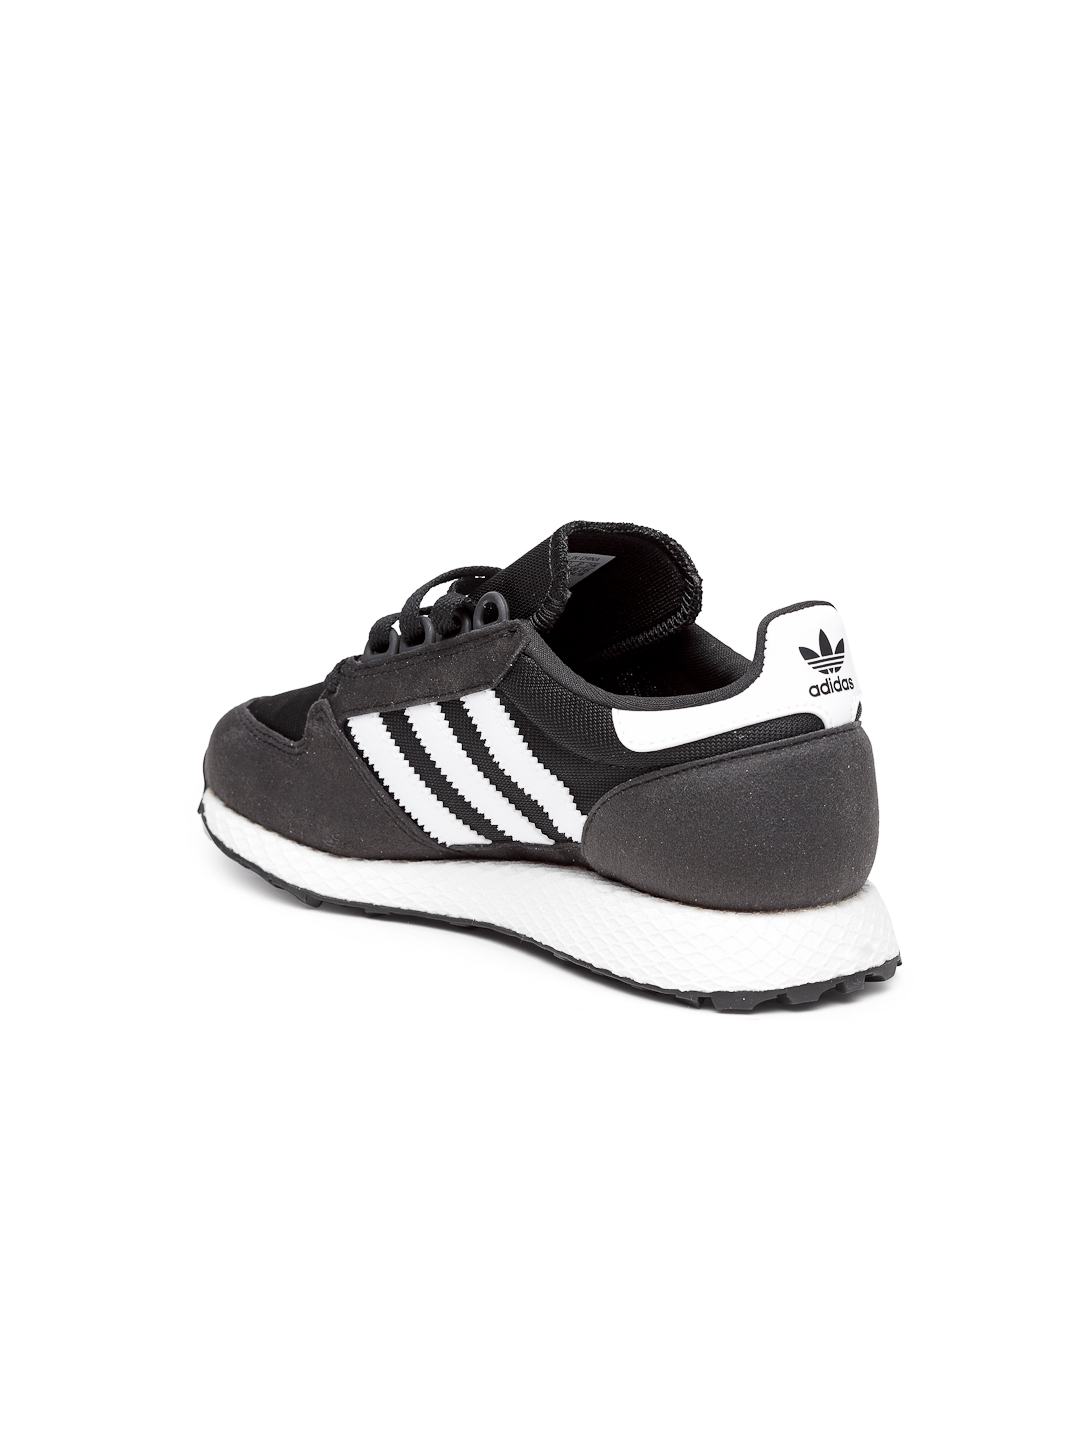 best sneakers f3eb7 55dcc ADIDAS Originals Kids Black Forest Grove Sneakers